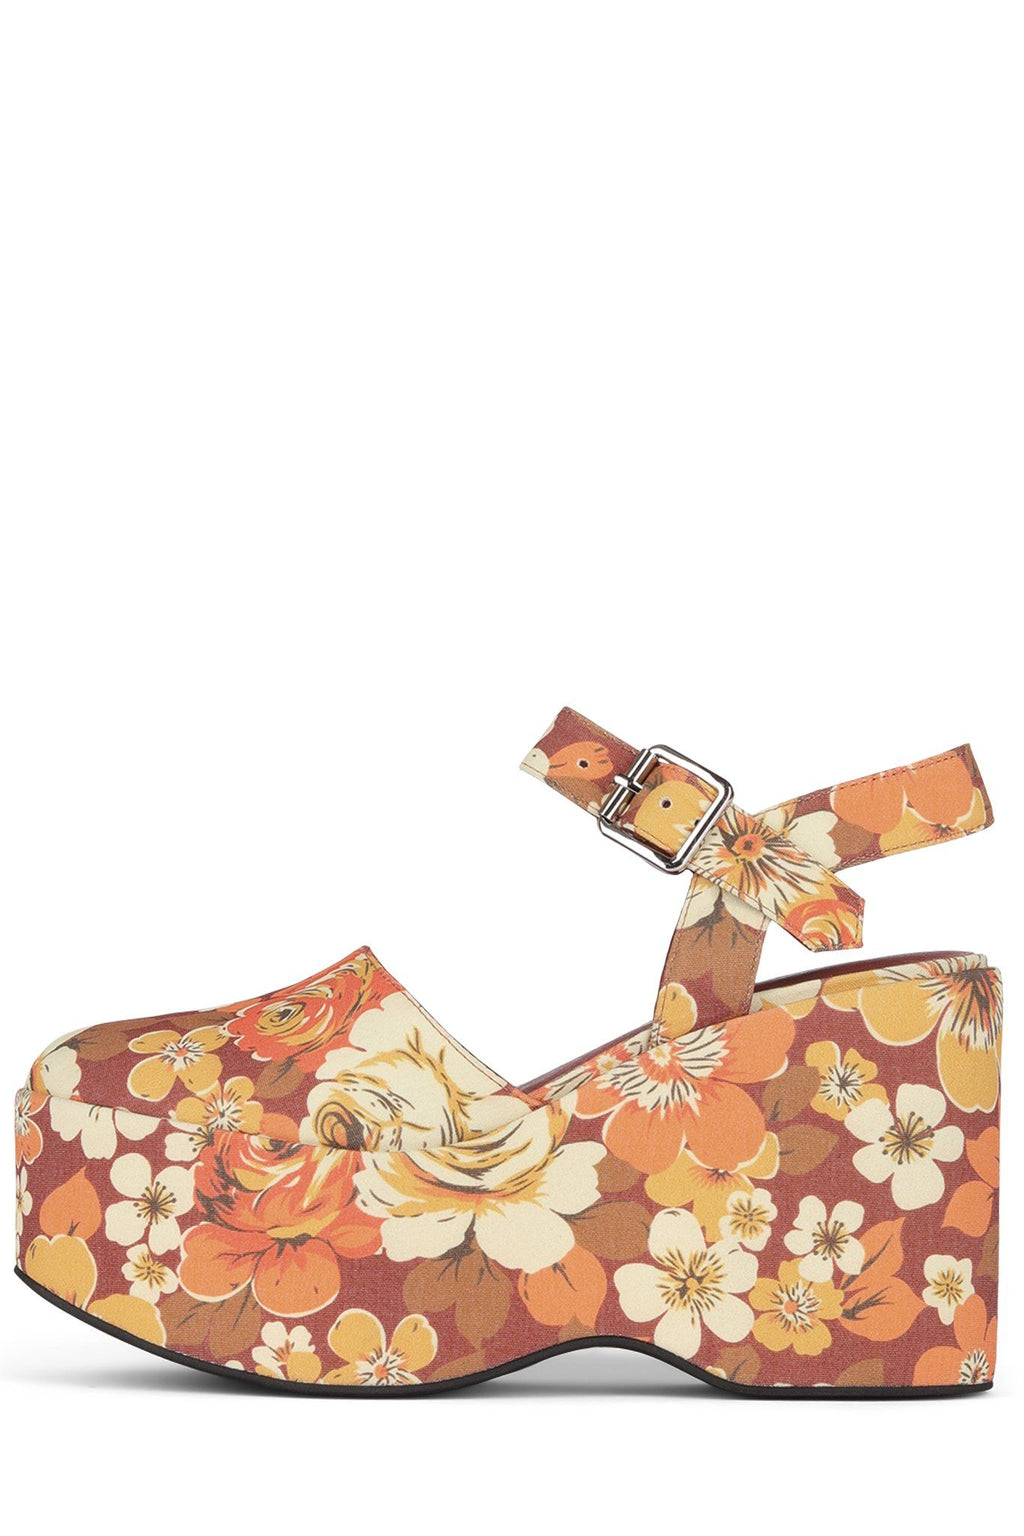 BOHEMIAN Platform Sandal YYH Orange Flowers 6